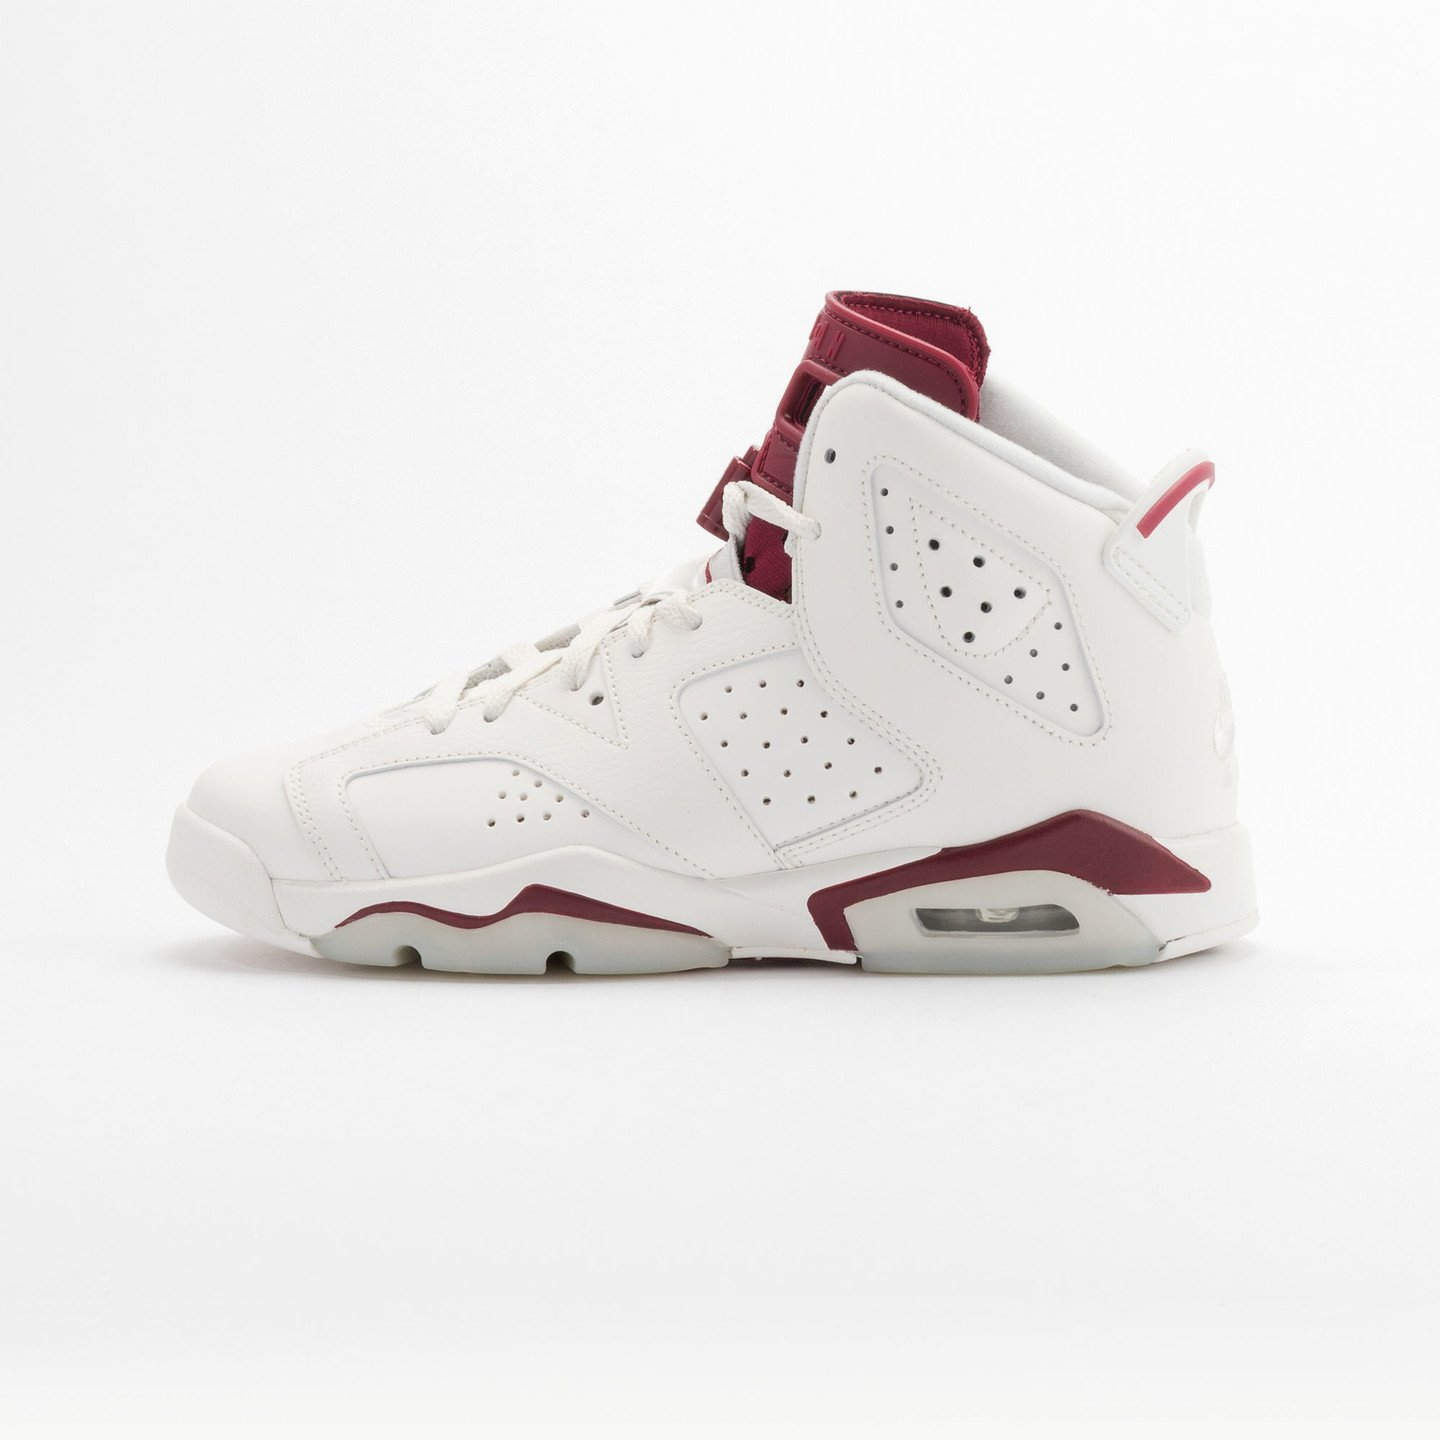 Jordan Air Jordan 6 Retro GS ´Maroon´ Off White / New Maroon 384665-116-38.5